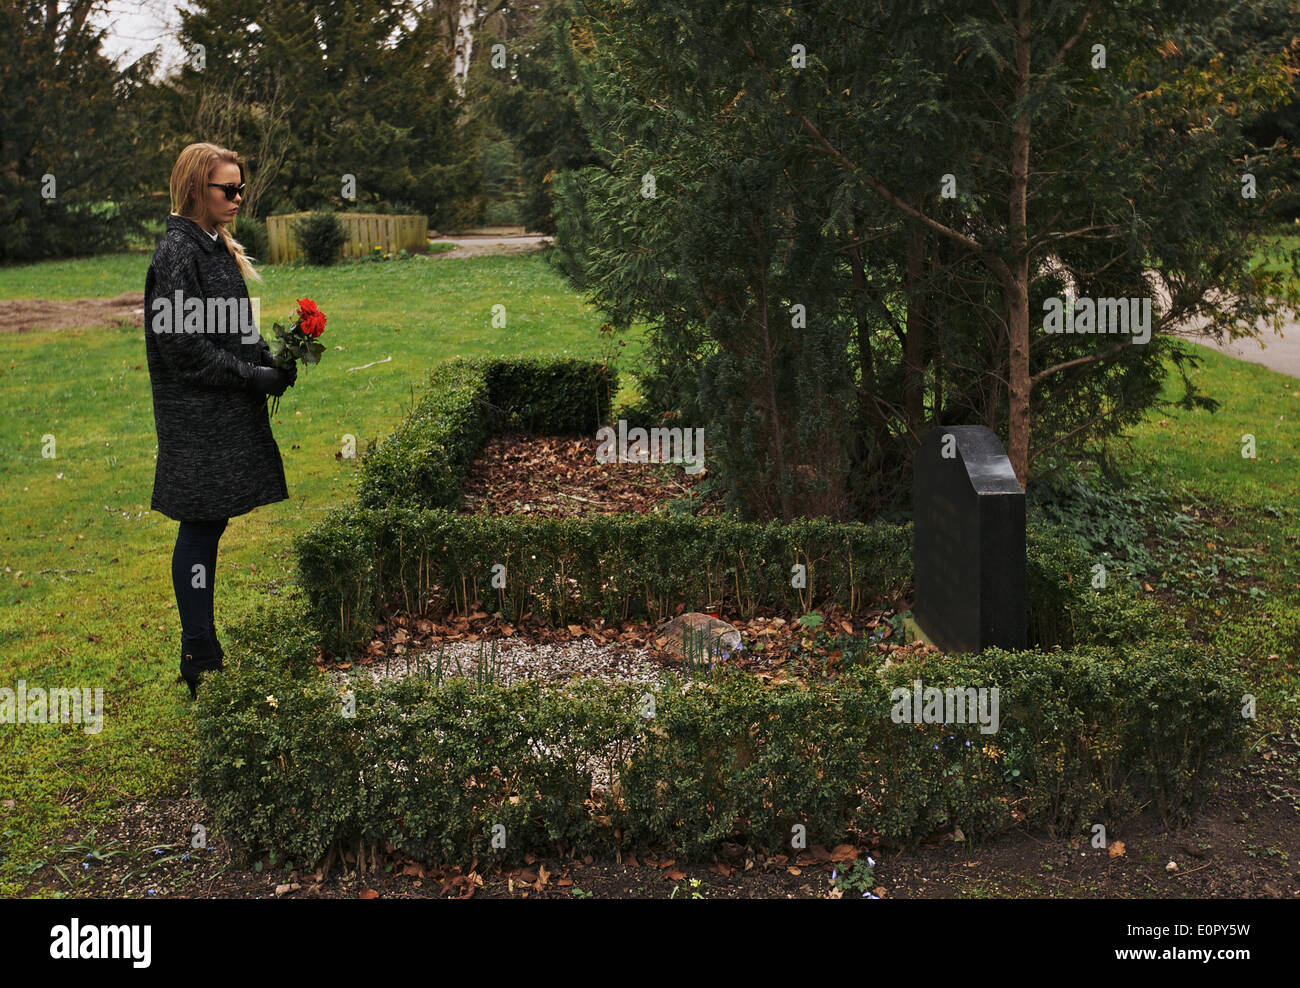 Sad woman grieving in a cemetery holding red roses. Young woman standing at the gravestone of her family member. - Stock Image